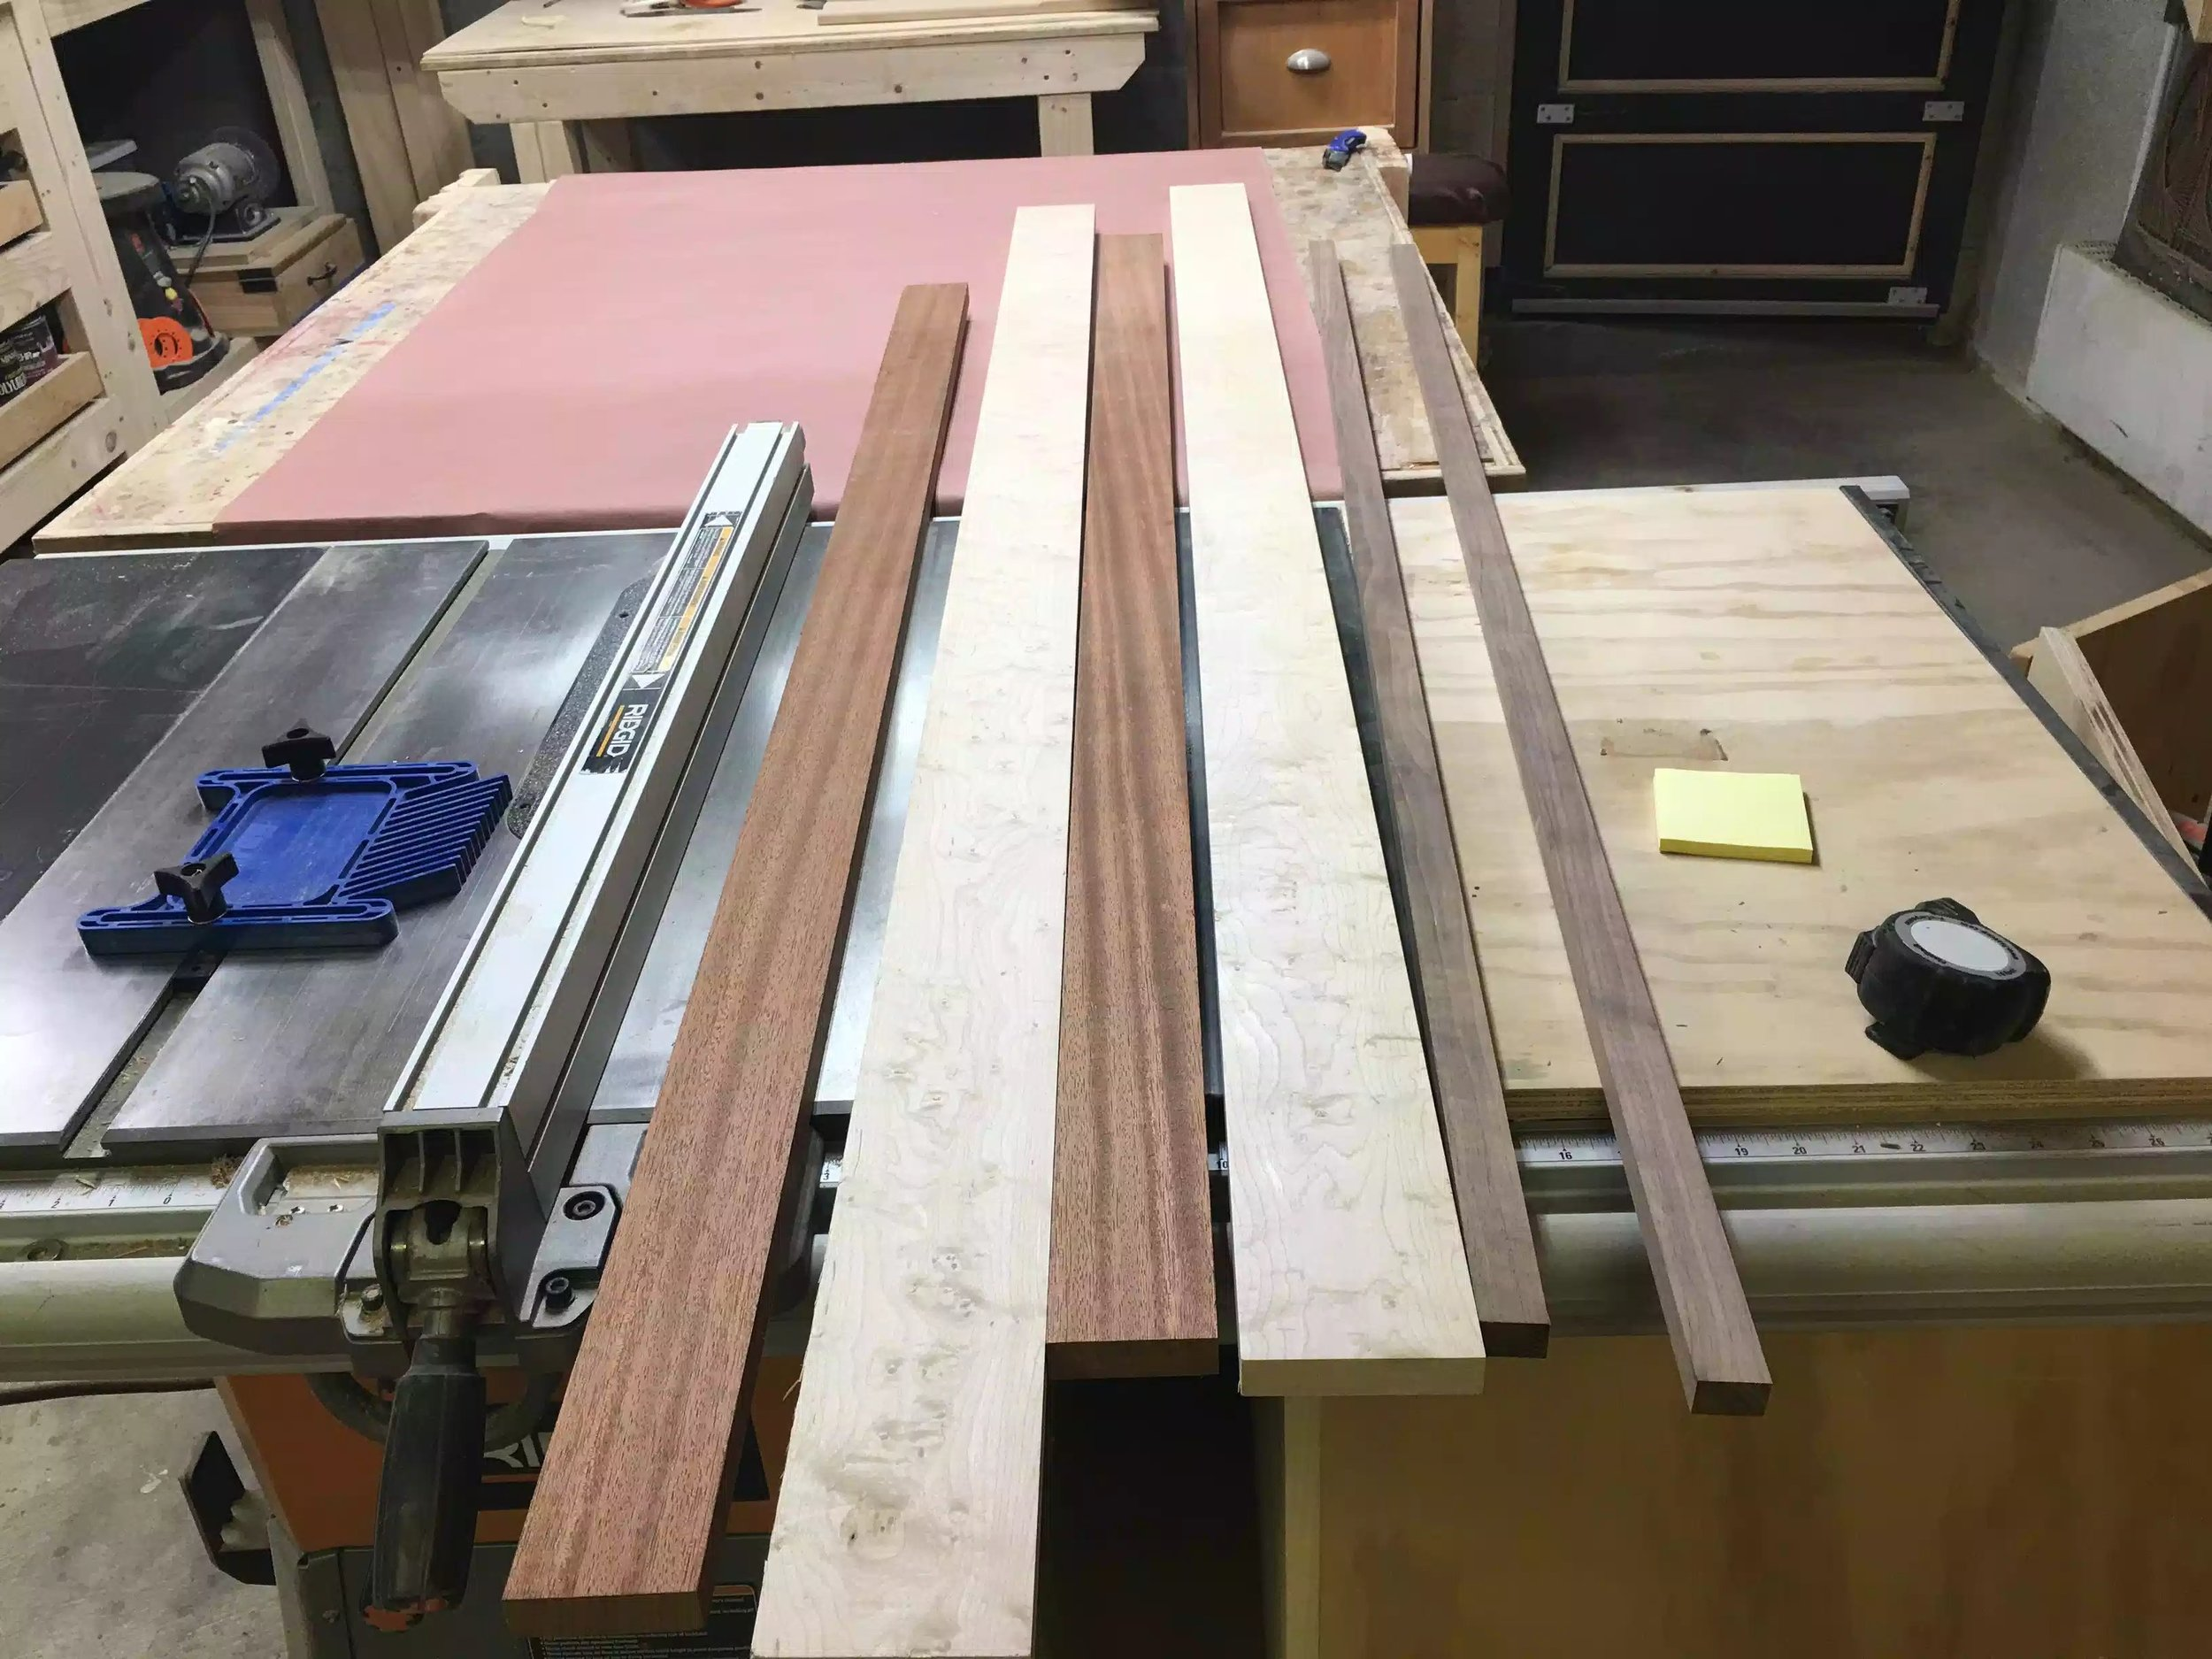 Here is the 3 species of wood that I will be ripping.